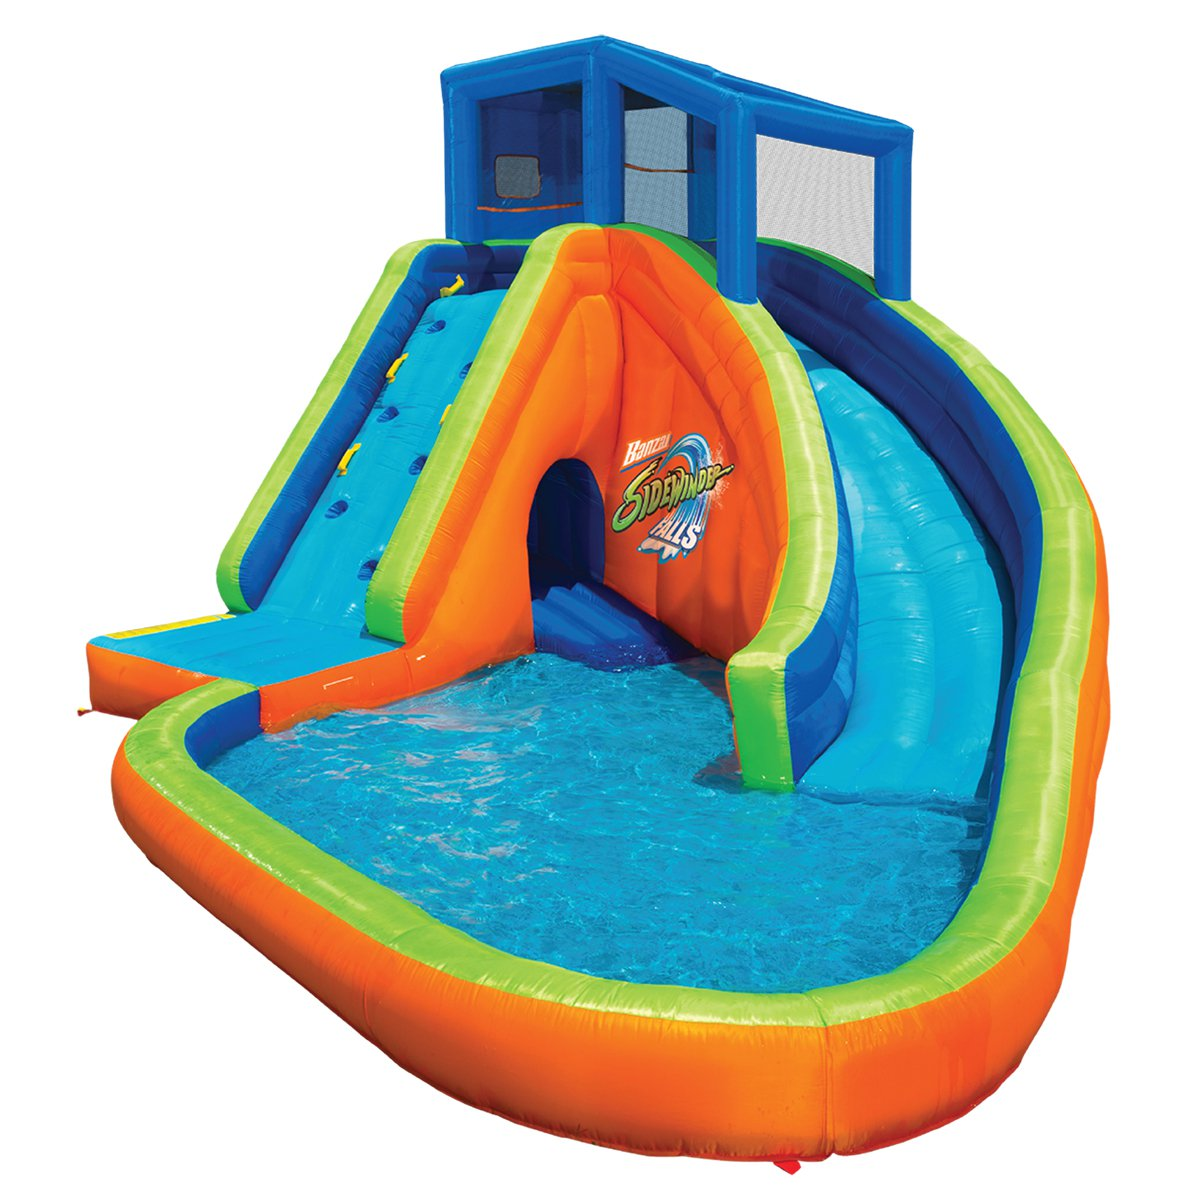 Banzai Living Sidewinder Falls Inflatable Water Park Pool...